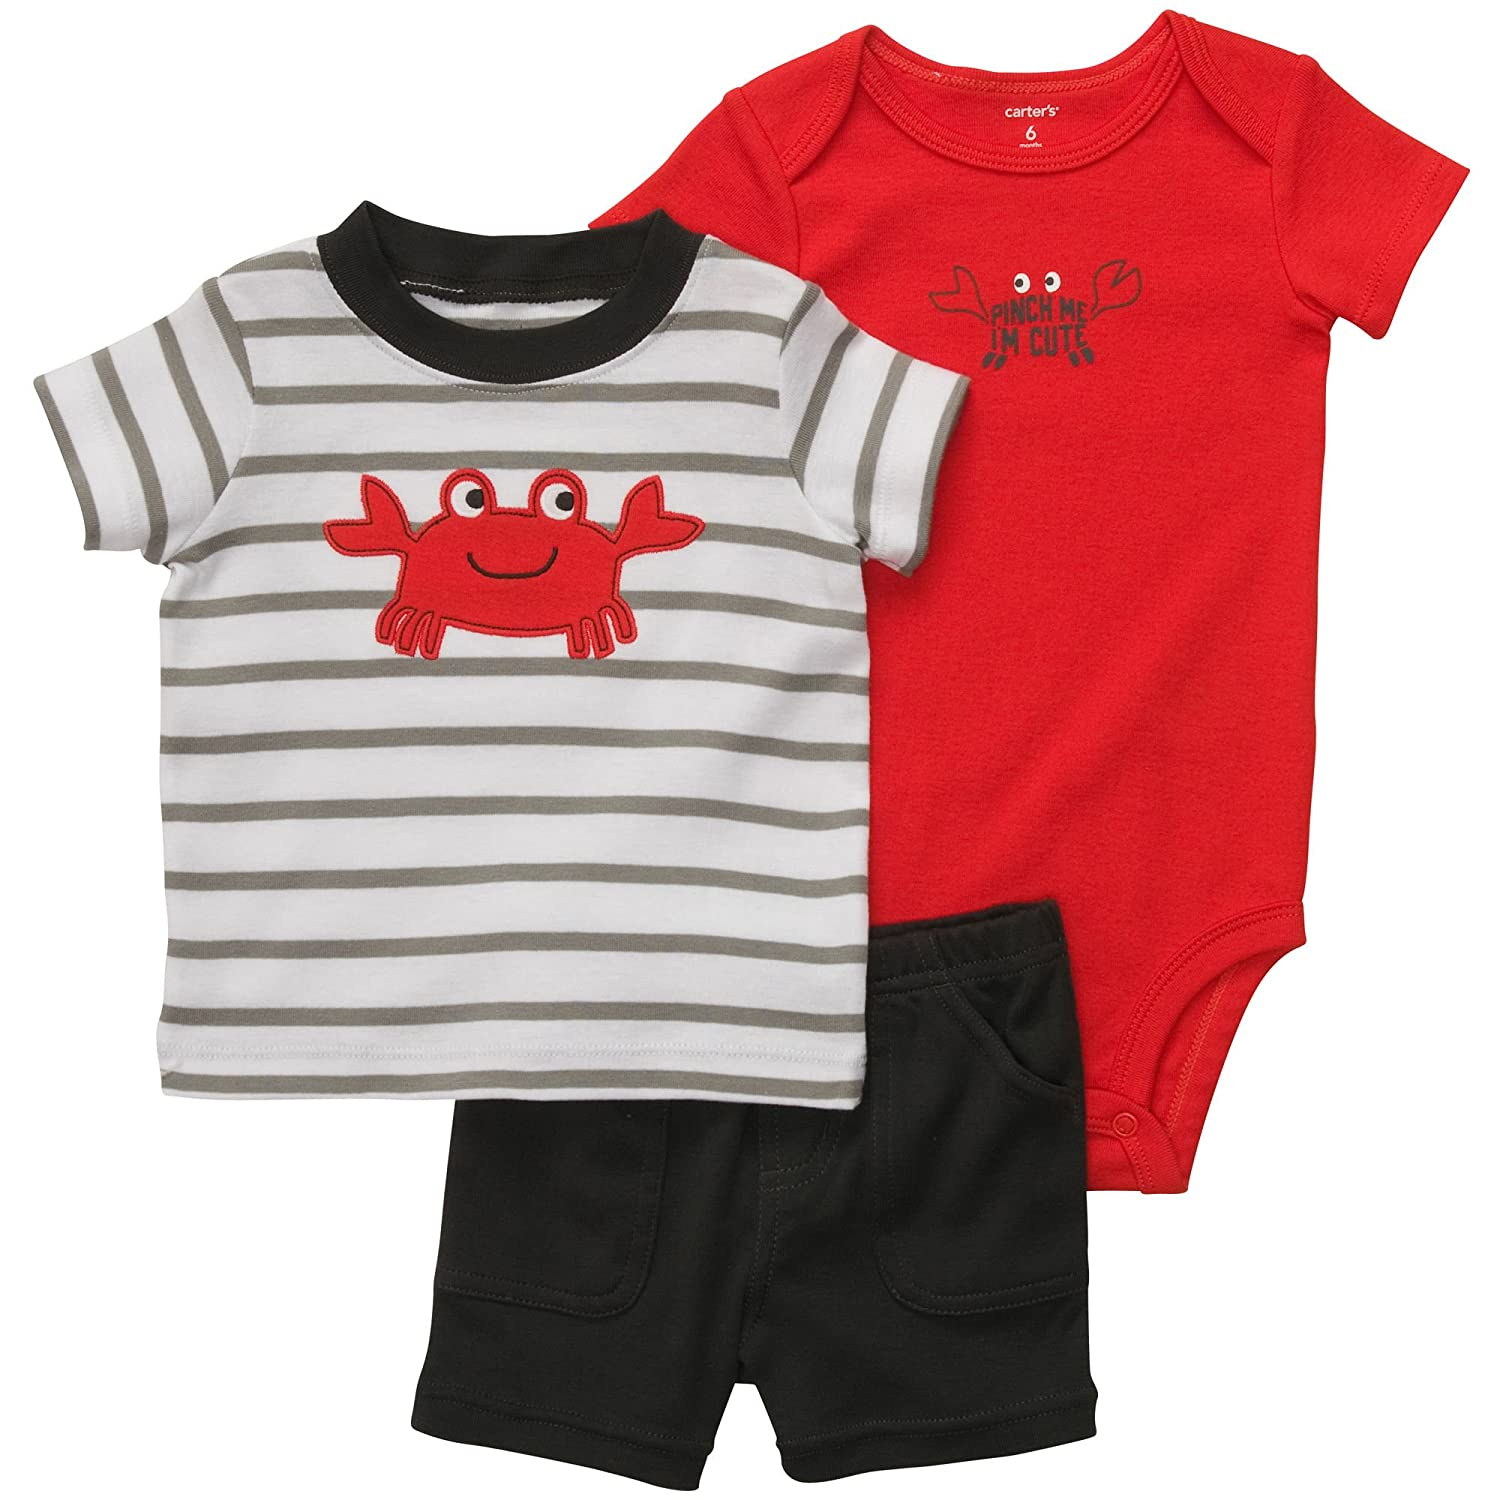 Carters 3-Piece Bodysuit Short Set